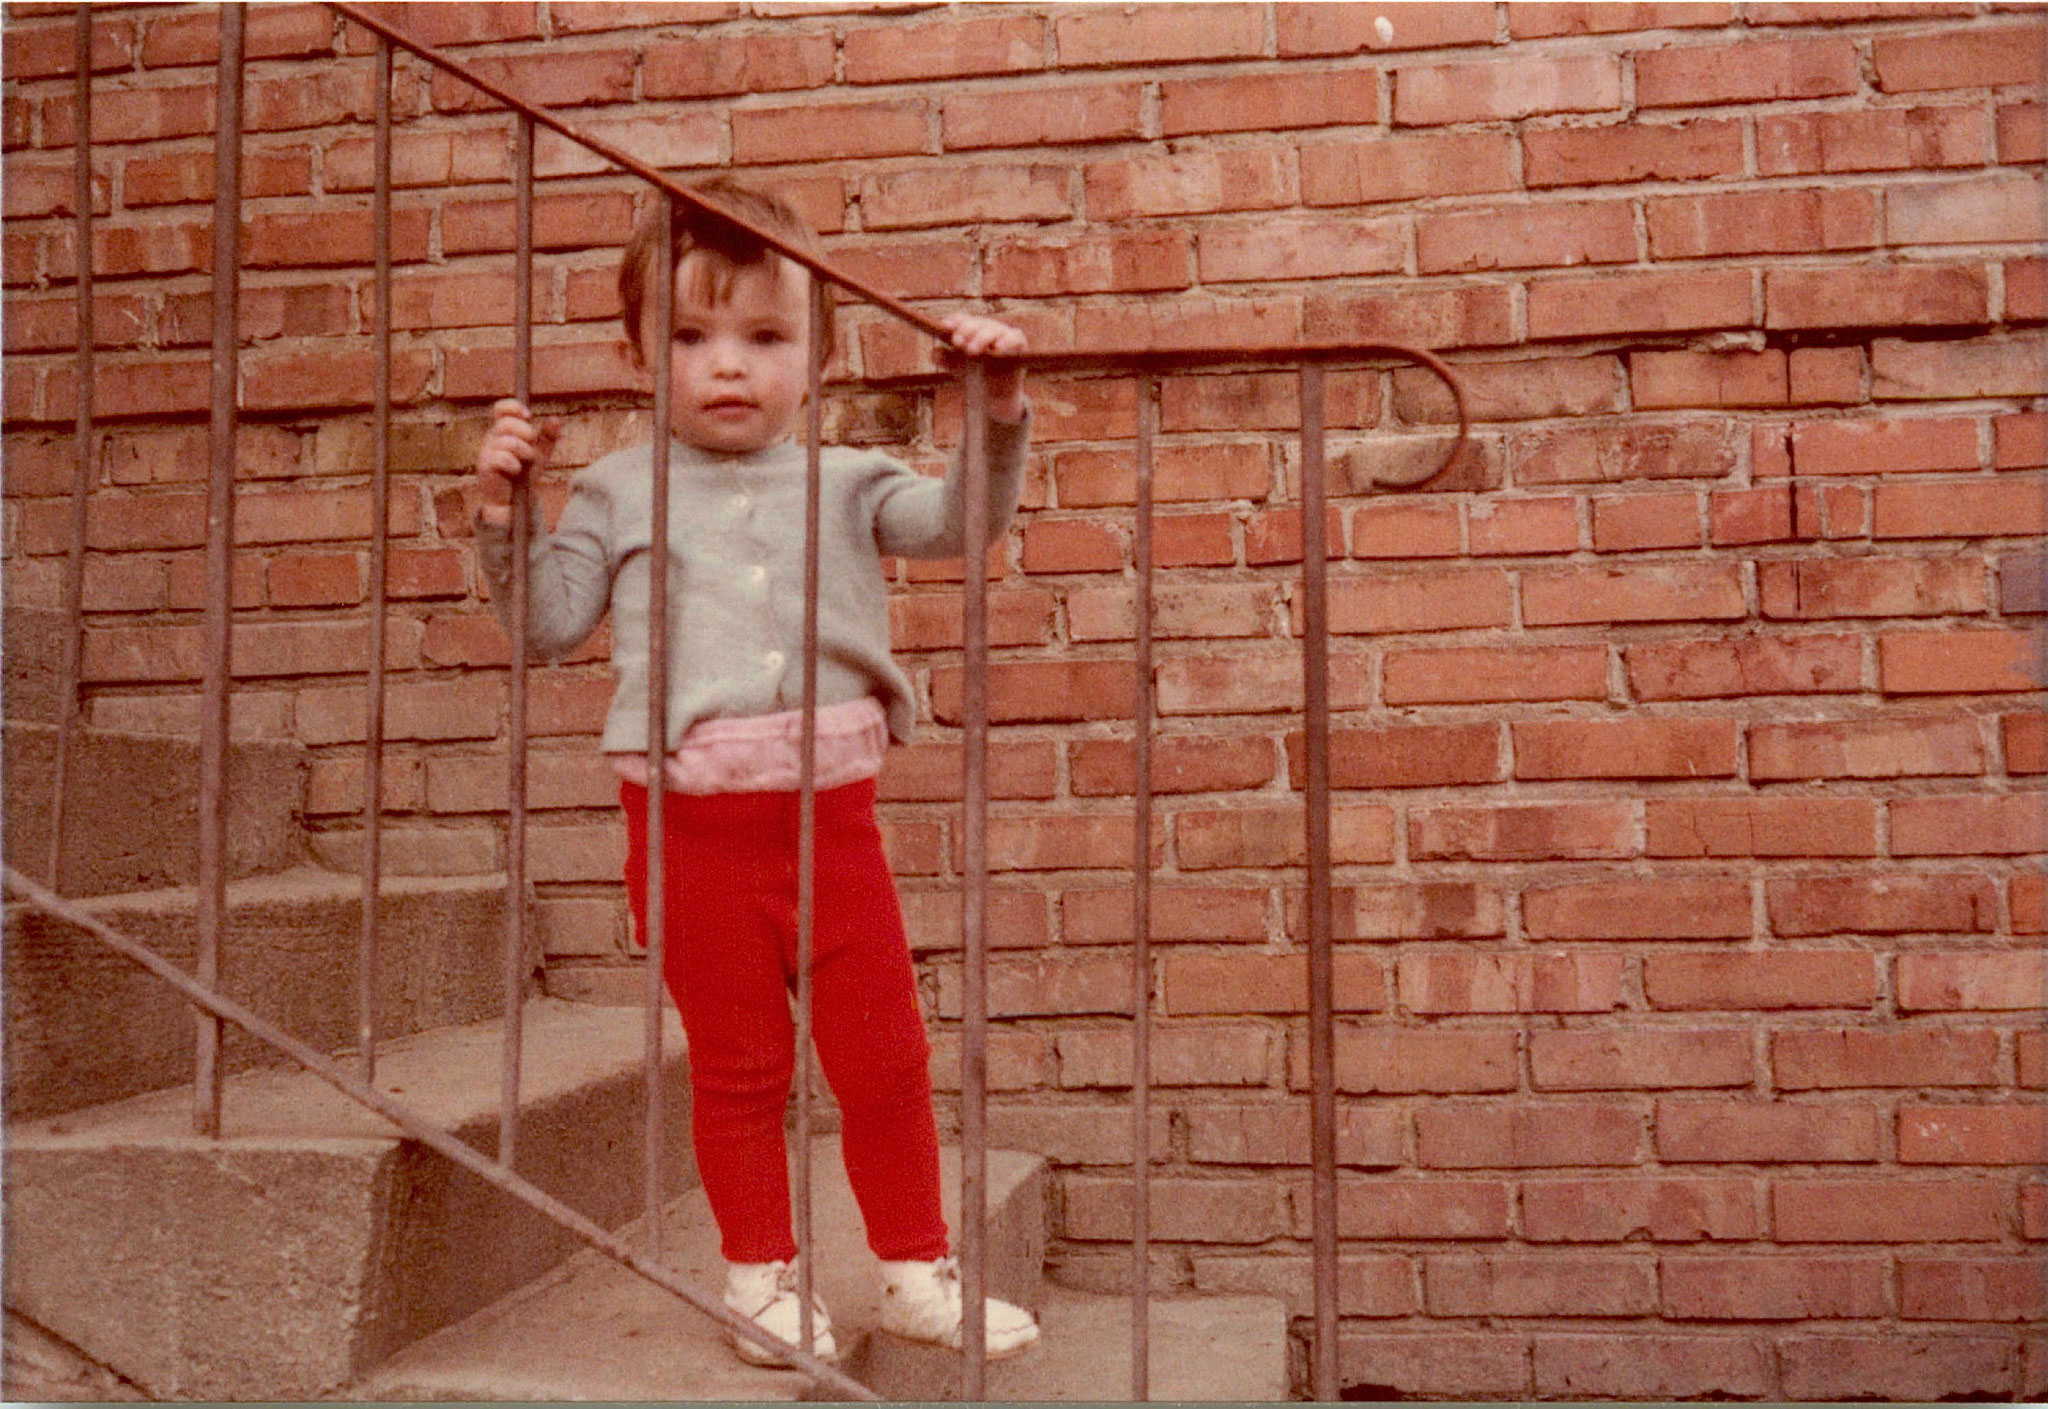 Ala (Halina)?, Jadwiga's daughter, 2 years old, 1978